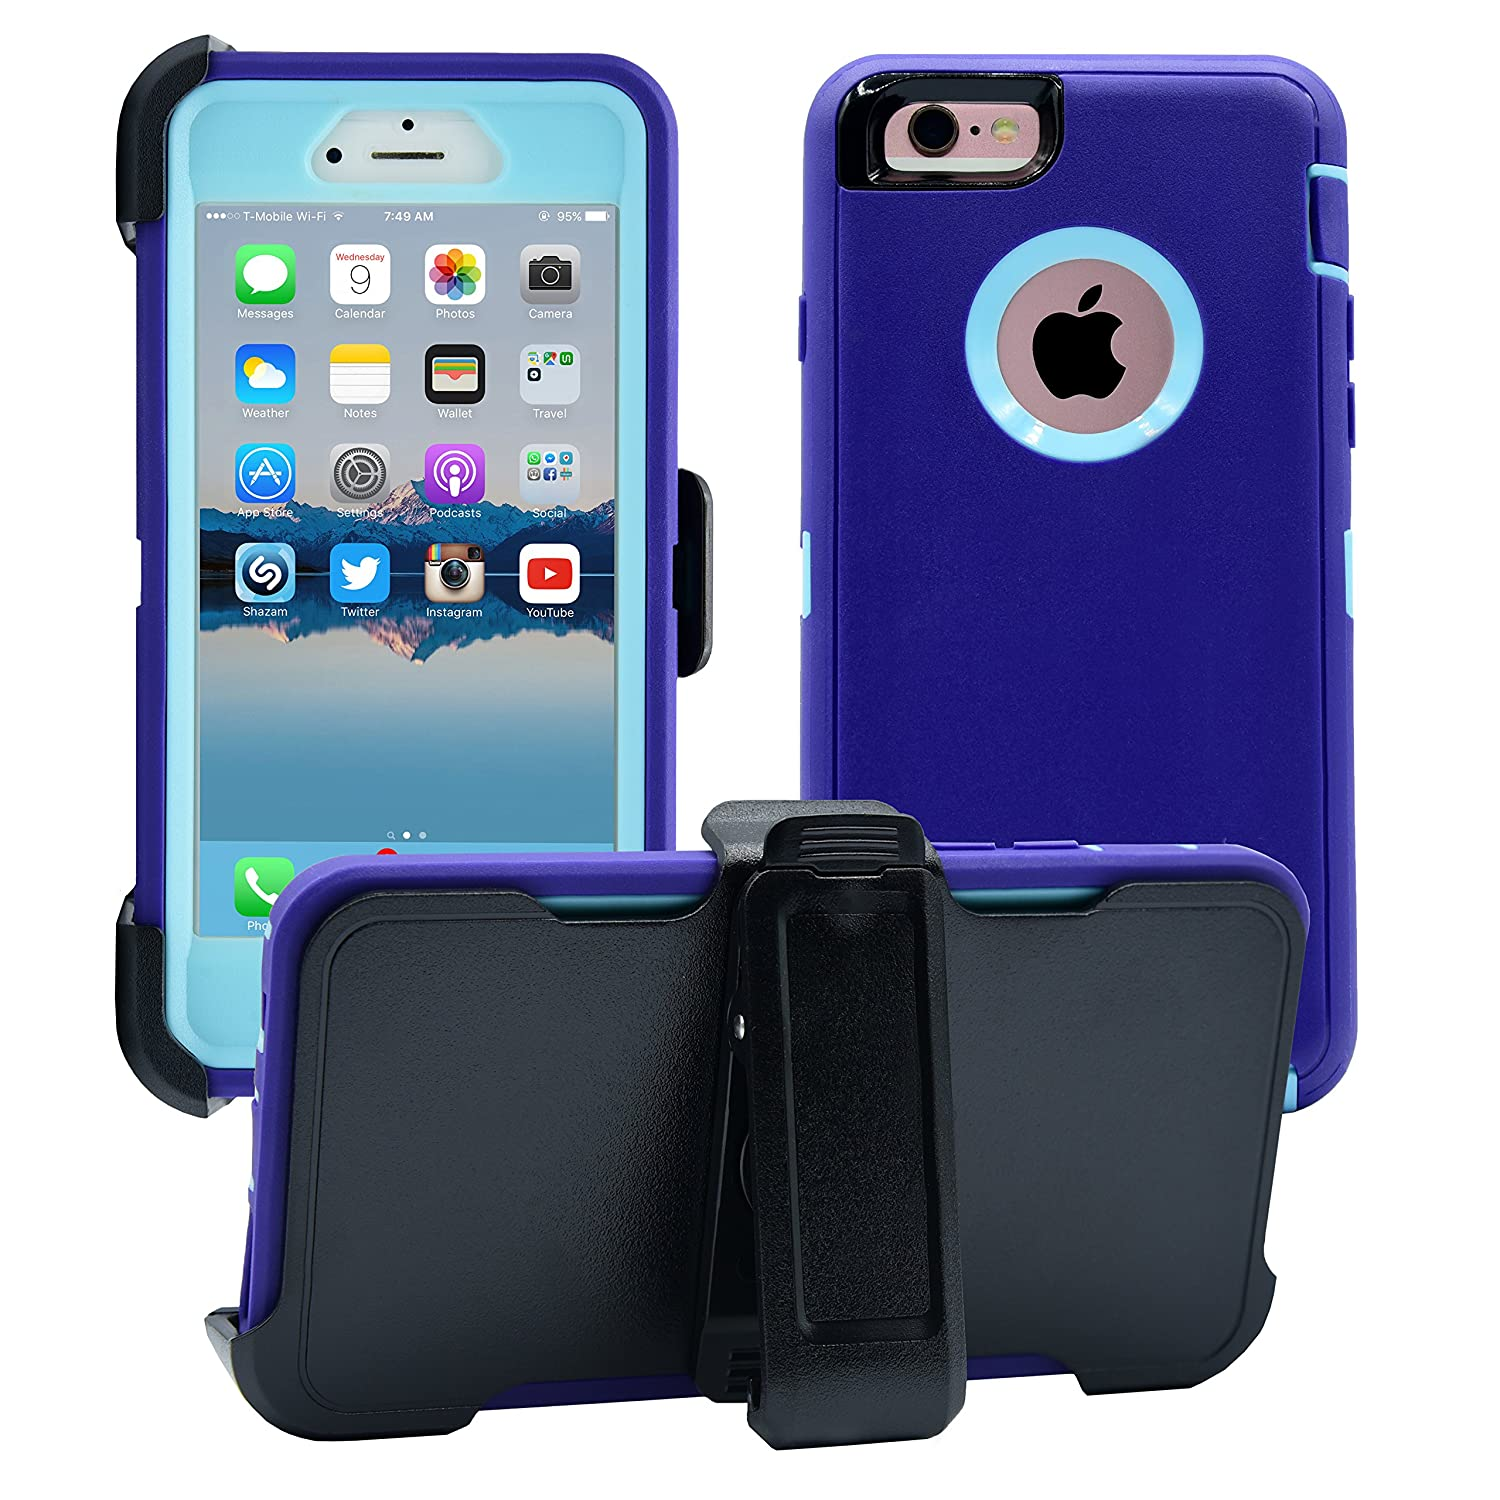 AlphaCell Cover Compatible with iPhone 6 / 6S (NOT Plus) | 2-in-1 Screen Protector & Holster Case | Full Body Military Grade Protection with Carrying Belt Clip | Protective Drop-Proof Shock-Proof 4334977252